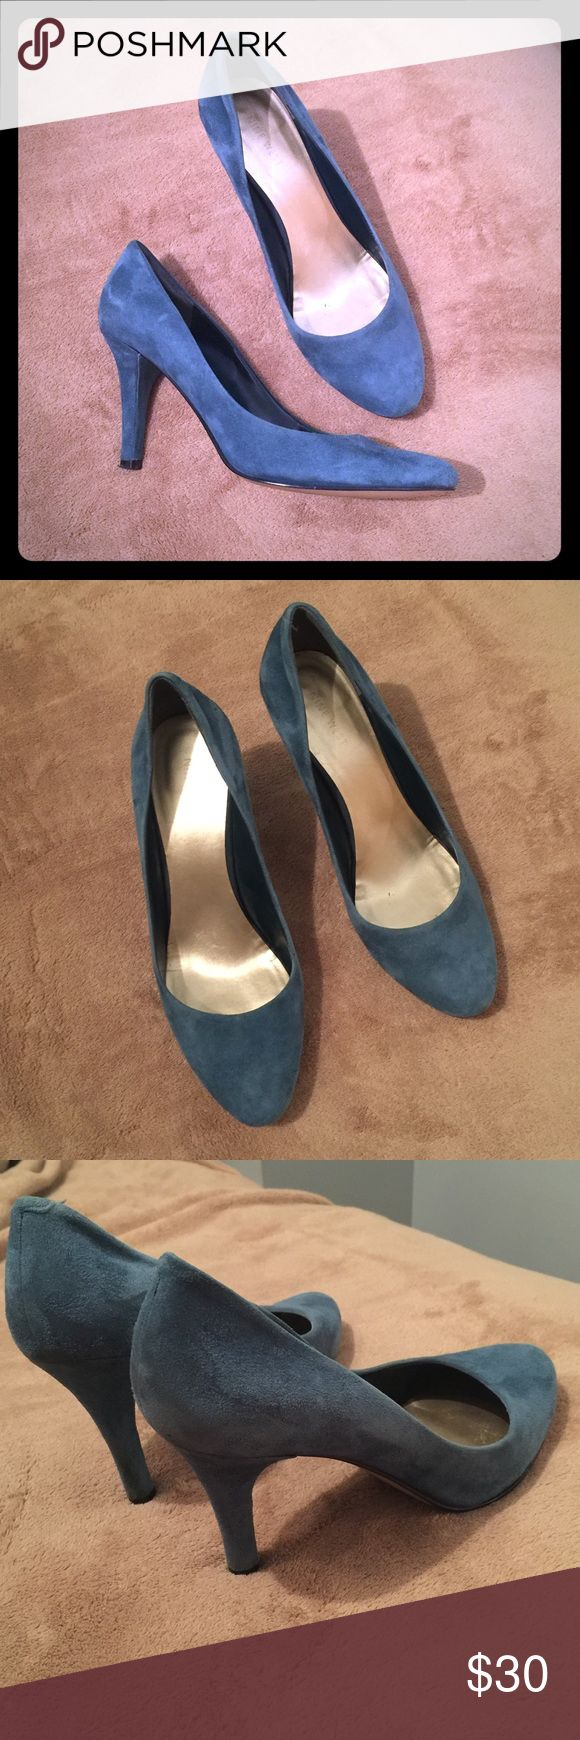 Nine West Blue Suede shoes Blue suede pumps. Good condition. Nine West Shoes Heels